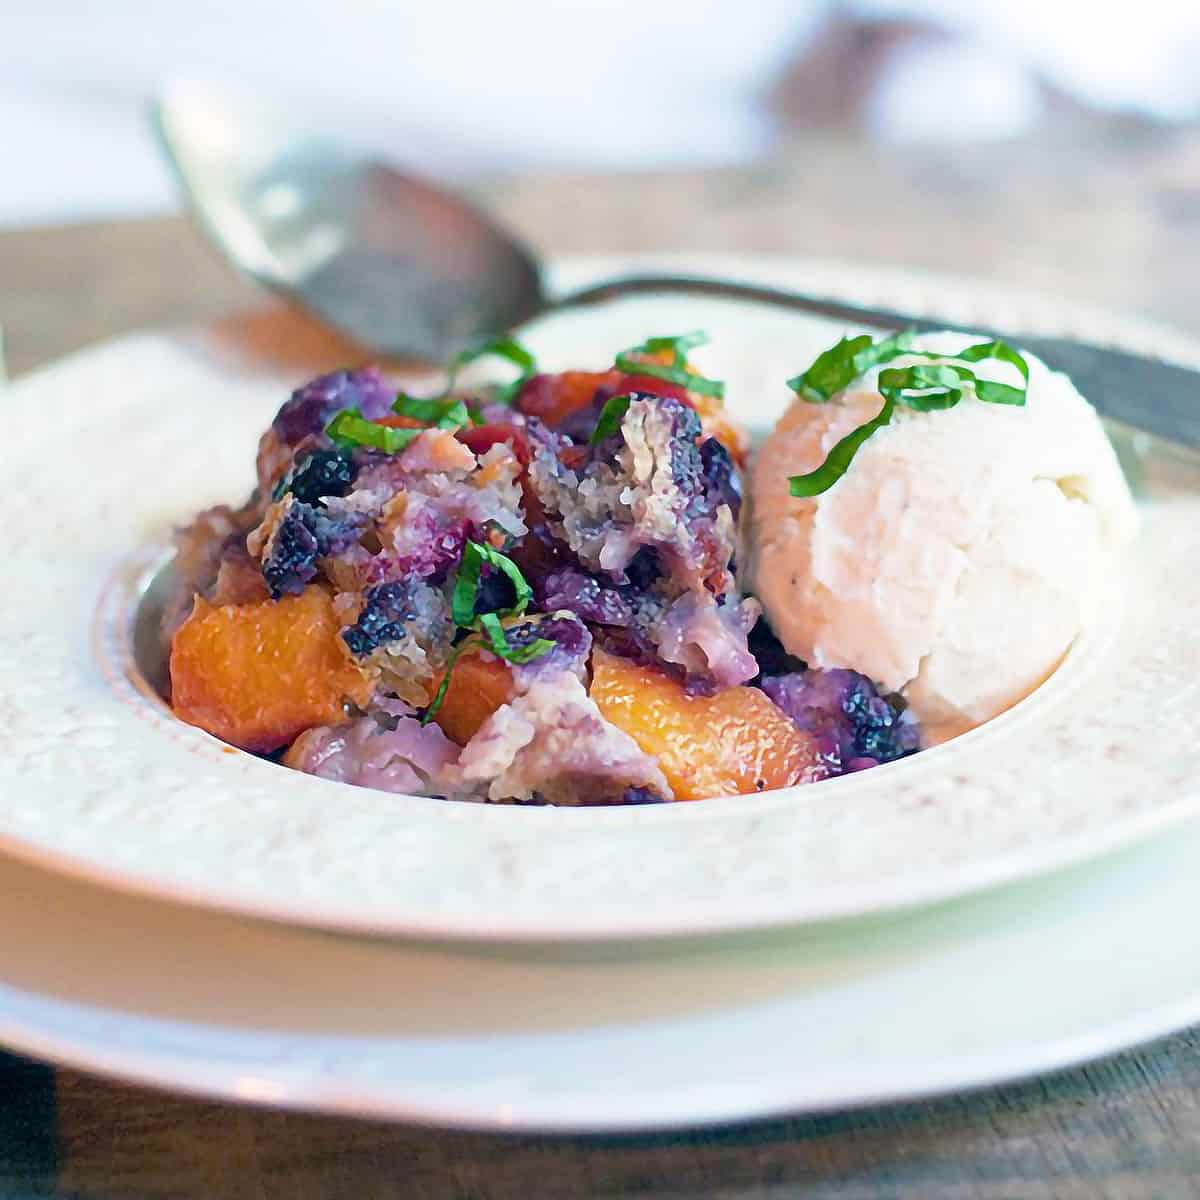 A serving of peach blueberry basil cobbler in a bowl with ice cream.